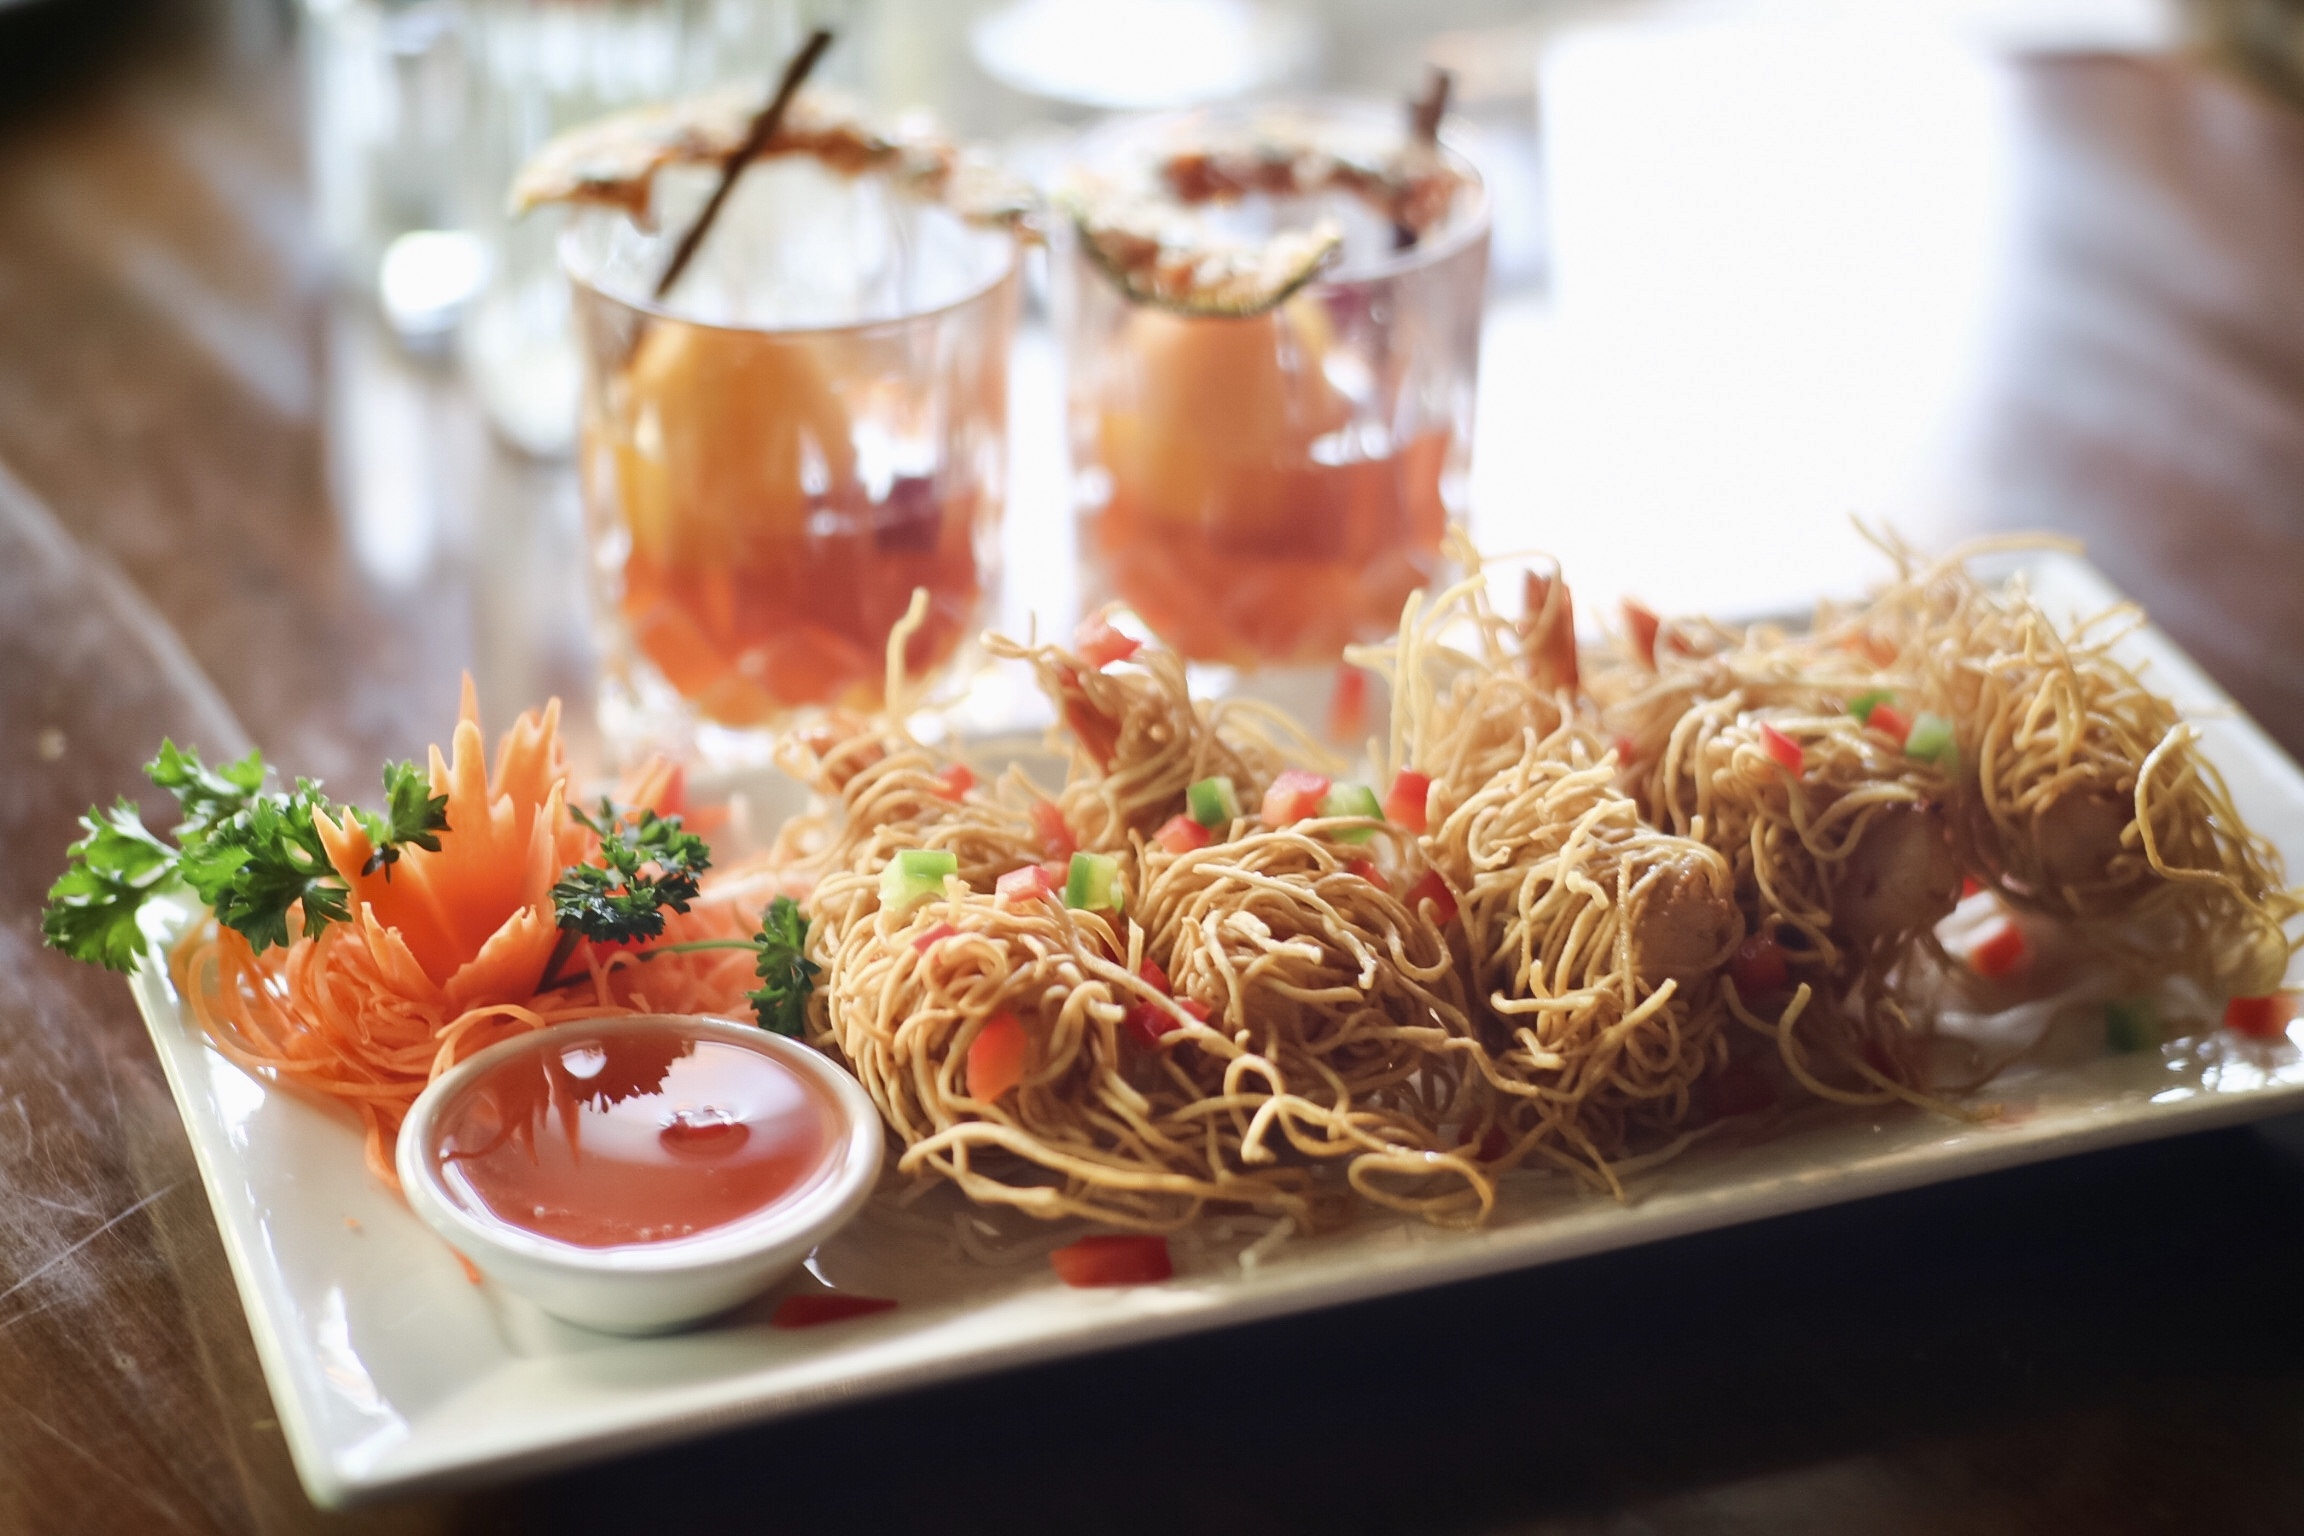 Prawns with Crunchy Noodles